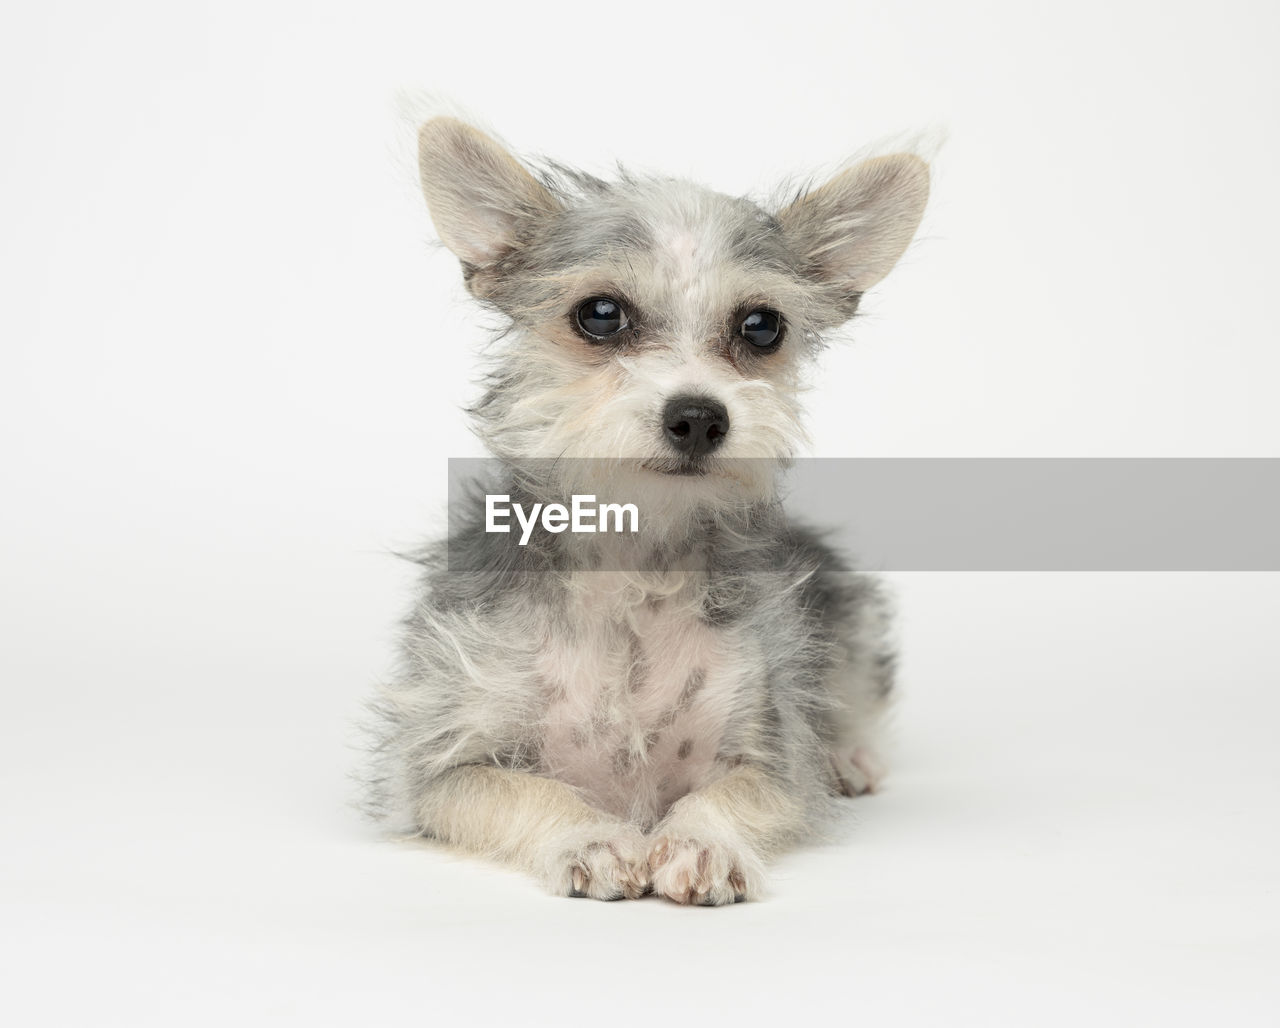 pets, studio shot, domestic, one animal, mammal, domestic animals, white background, animal themes, animal, canine, dog, looking at camera, indoors, portrait, vertebrate, no people, cute, cut out, sitting, young animal, small, chihuahua - dog